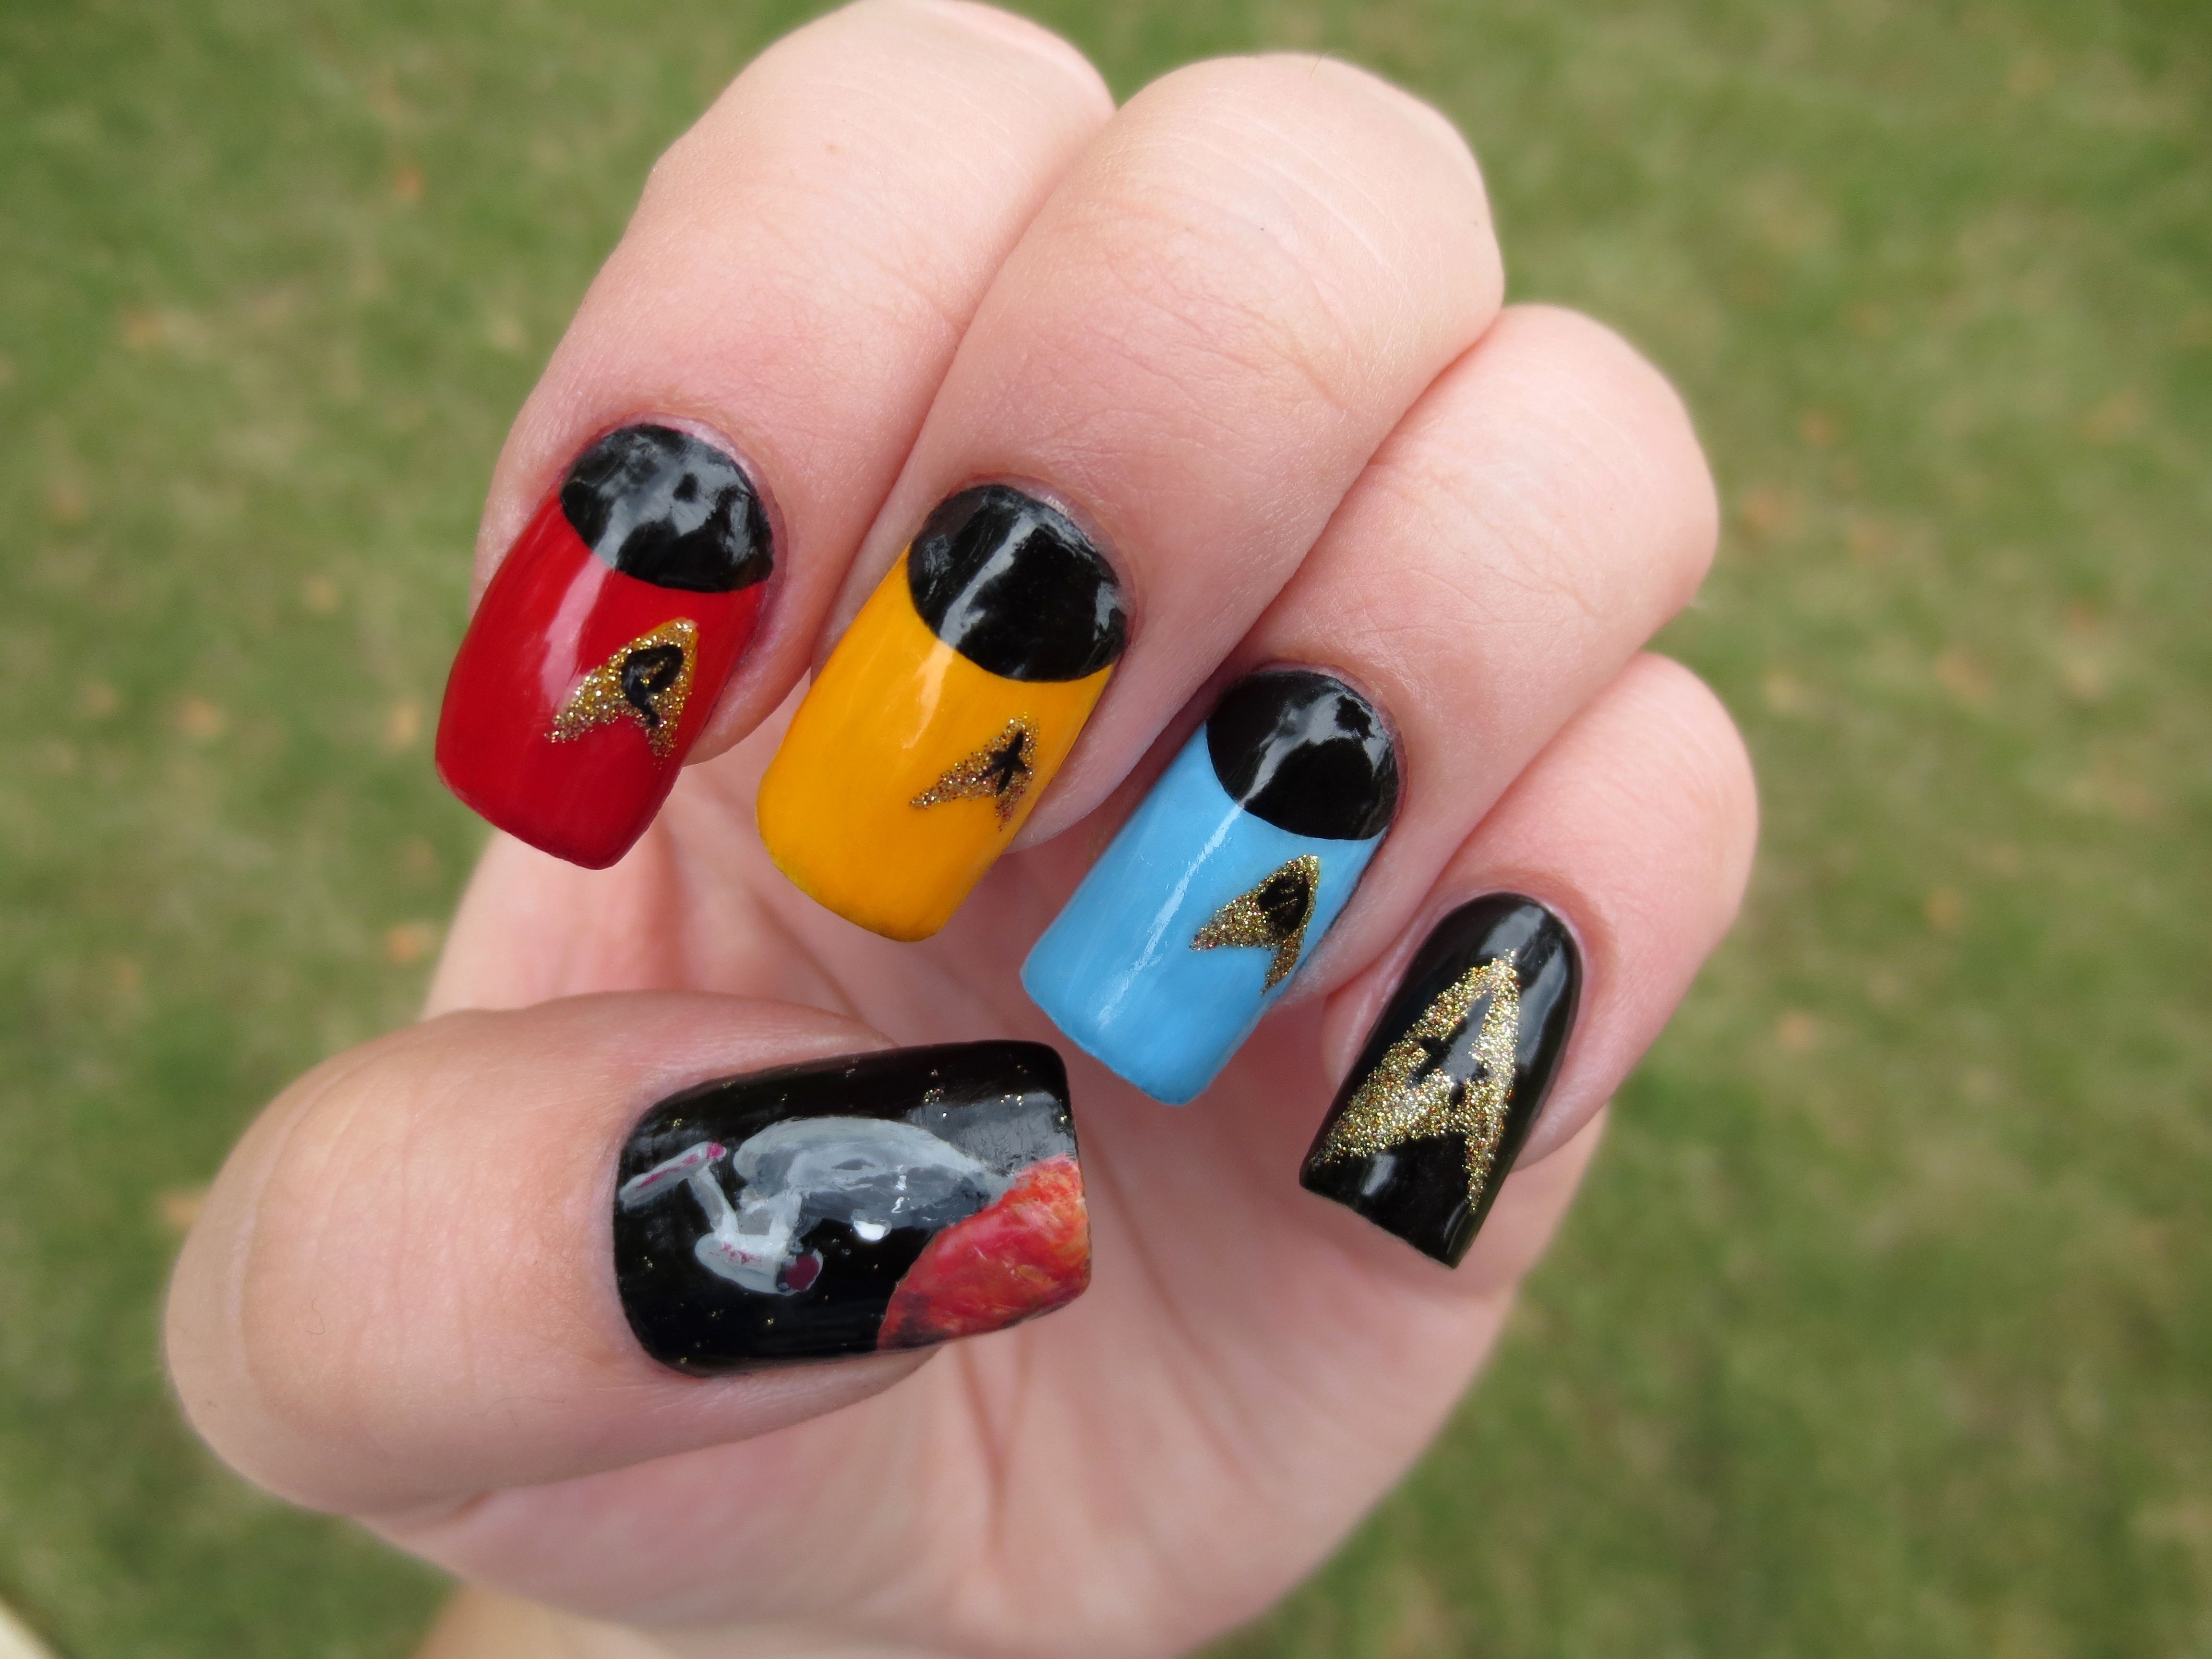 Star Trek nails for the new movie!